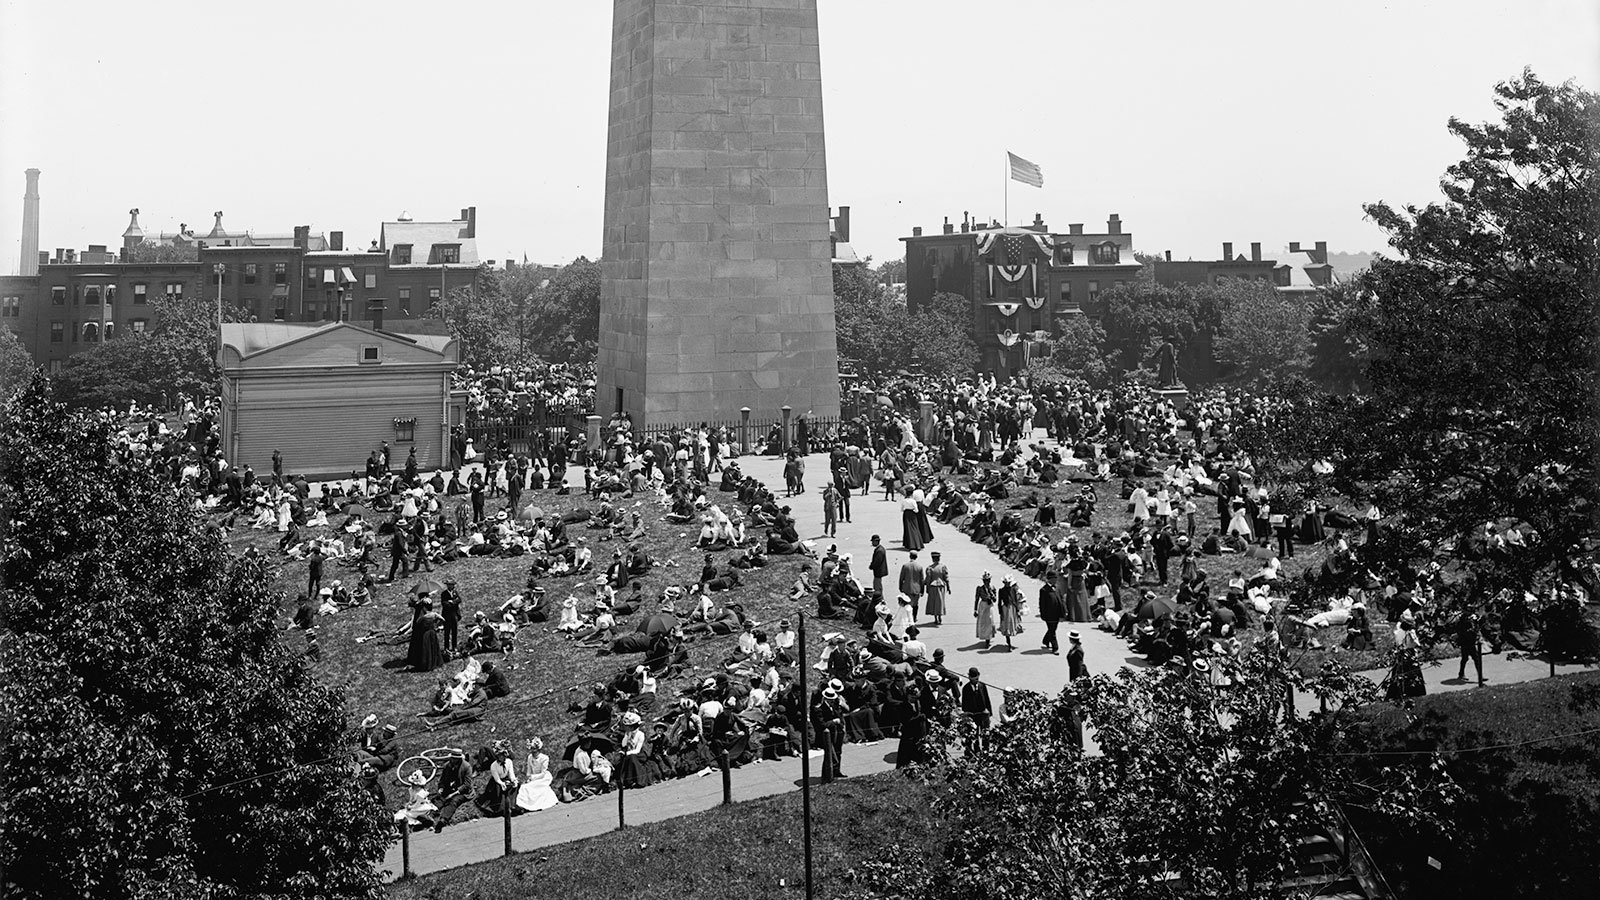 The Bunker Hill Monument on Bunker Hill Day, published by the Detroit Publishing Co.